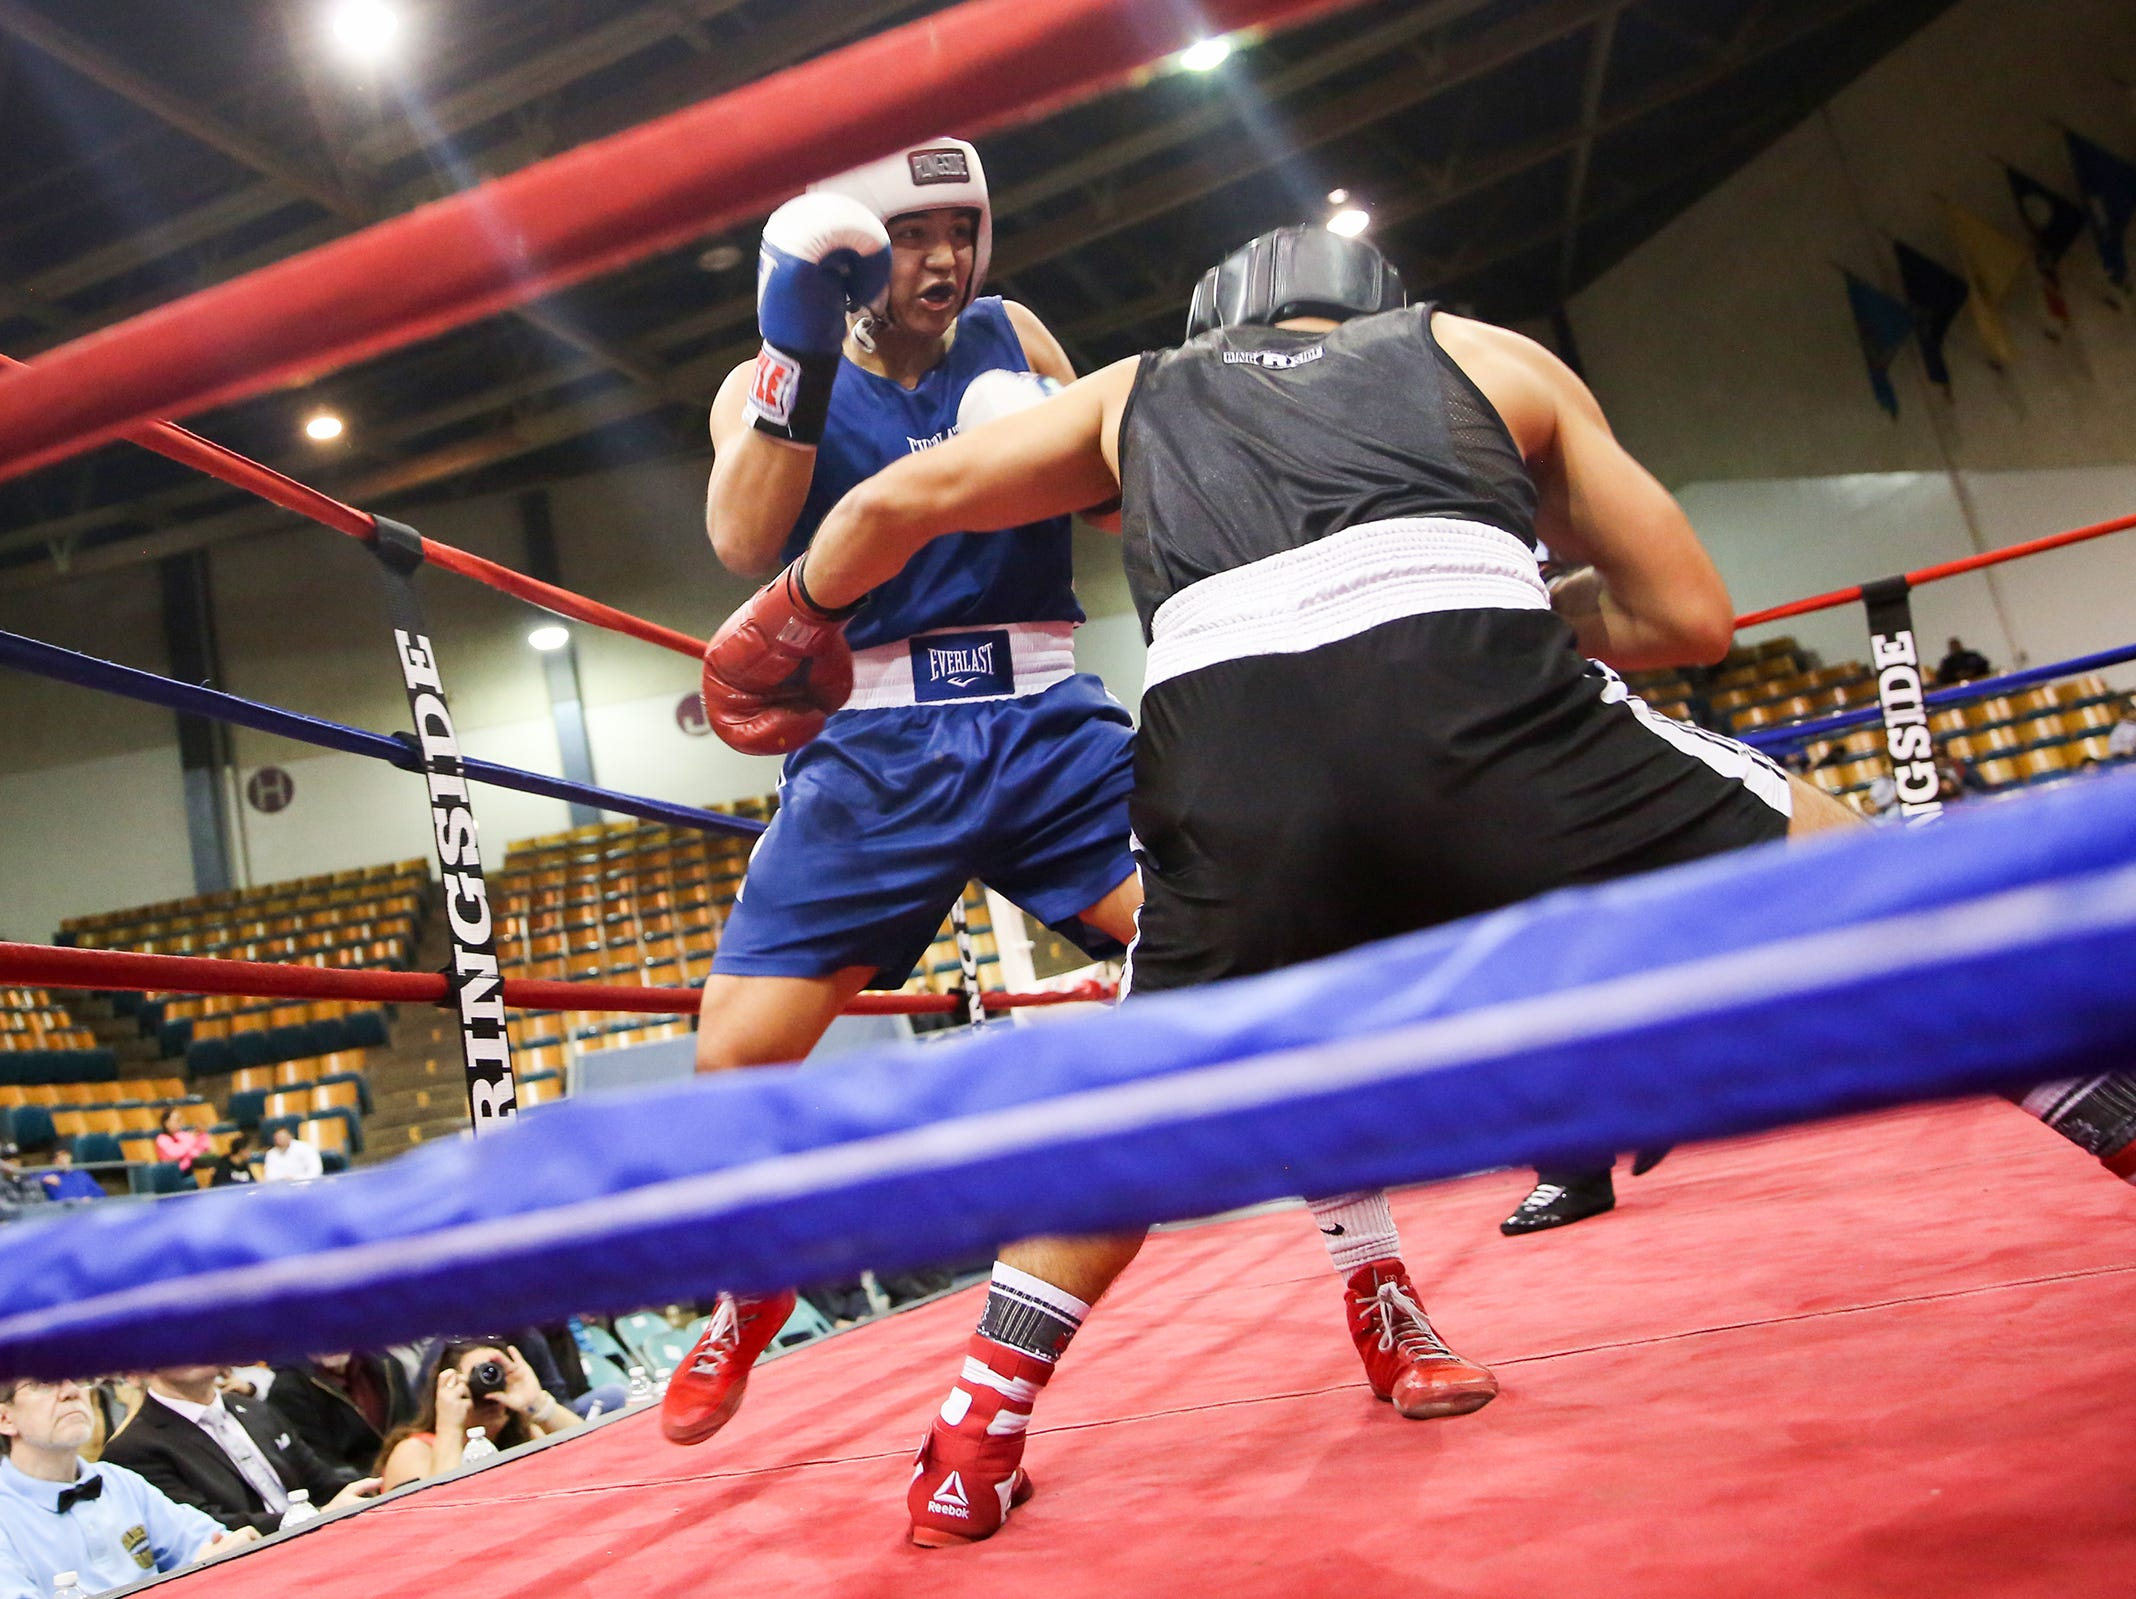 Omar Murillo of Salem takes on Eduard Ynez of Grehsam at the Oregon Golden Gloves championship matches at the Salem Armory on Saturday, Feb. 2, 2019.